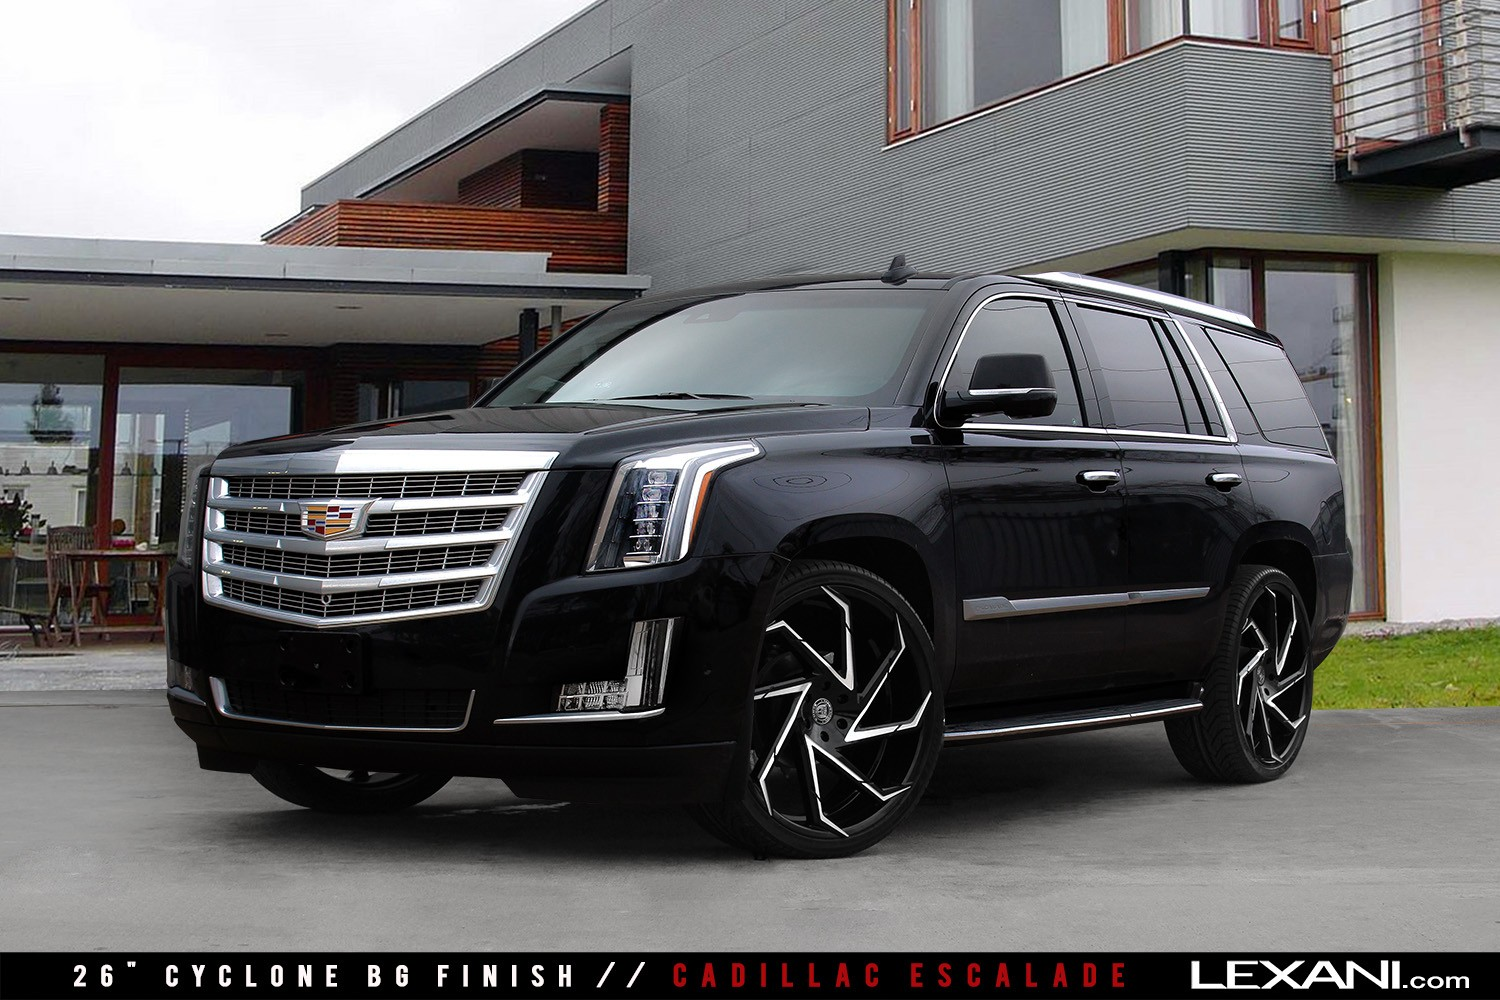 Cadillac Escalade on Cyclone